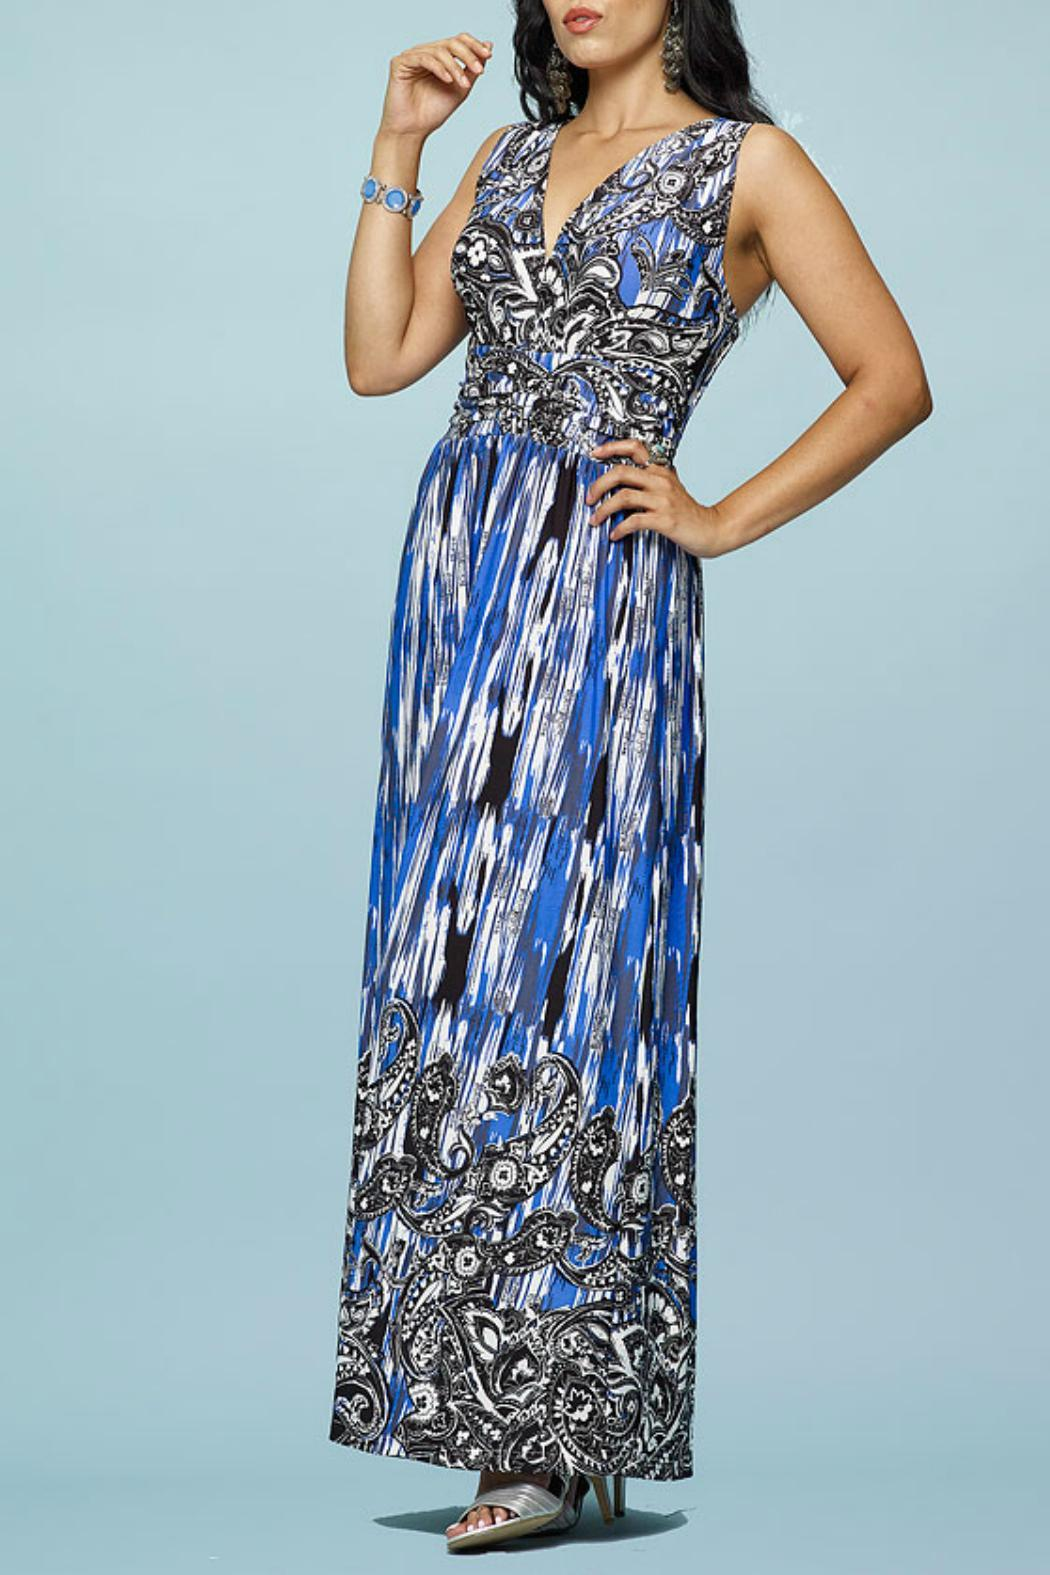 Minkas Blue Maxi Dress from Canada by Goldcoast — Shoptiques